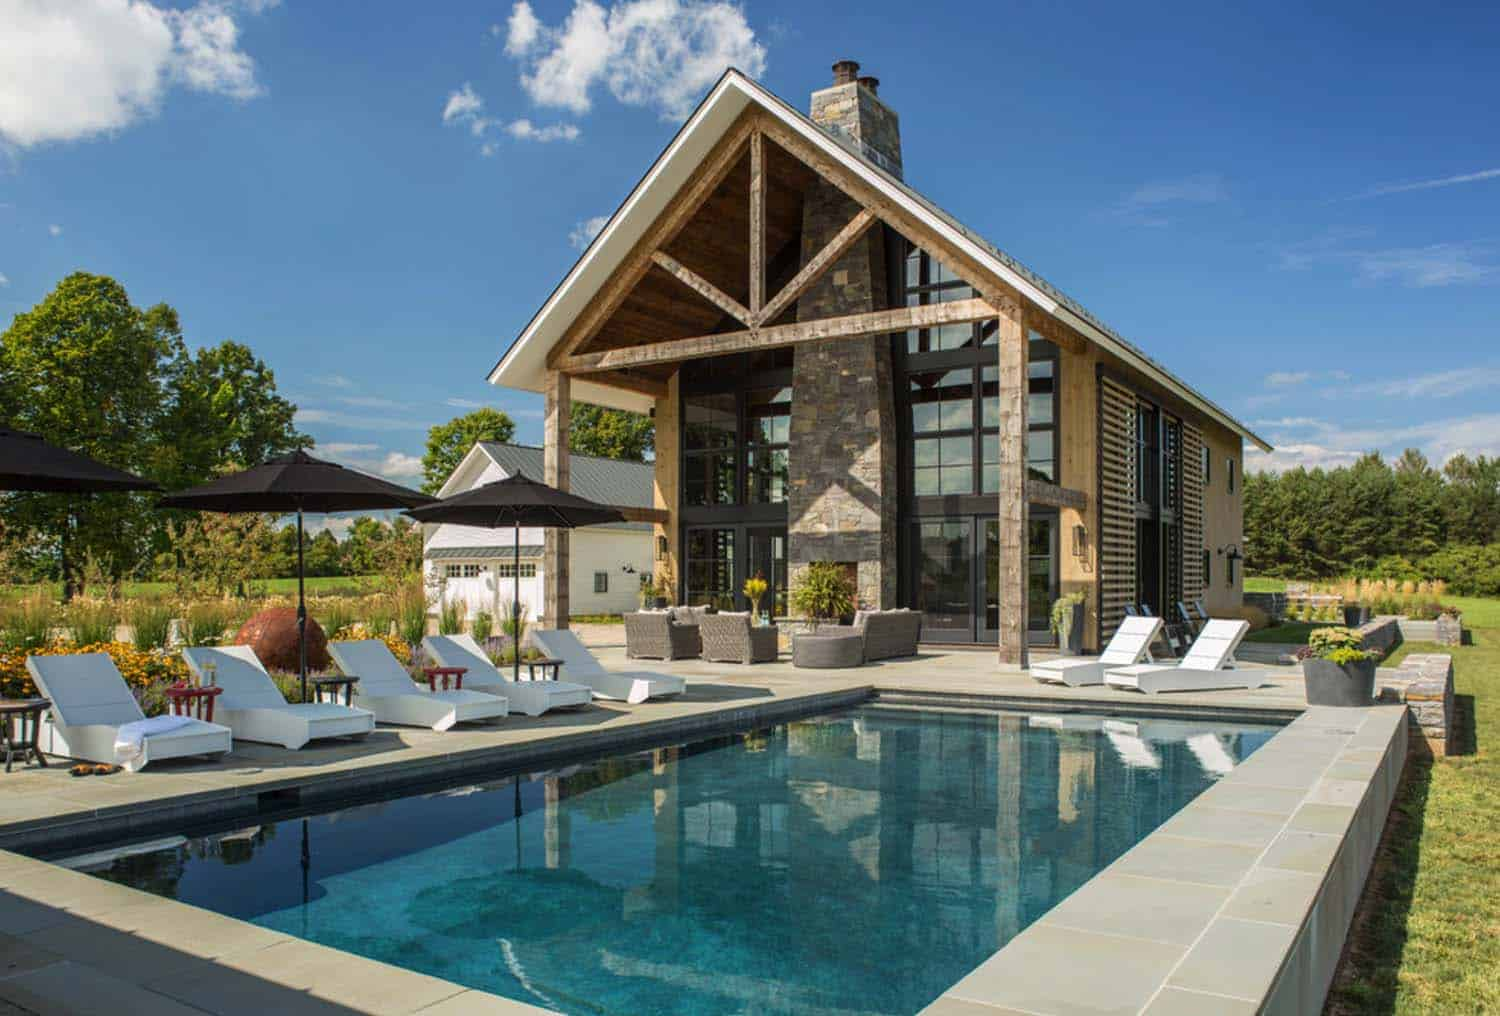 Traditional farmhouse style dwelling in Vermont with a modern twist for Small Farmhouse Design With Swimming Pool  75sfw